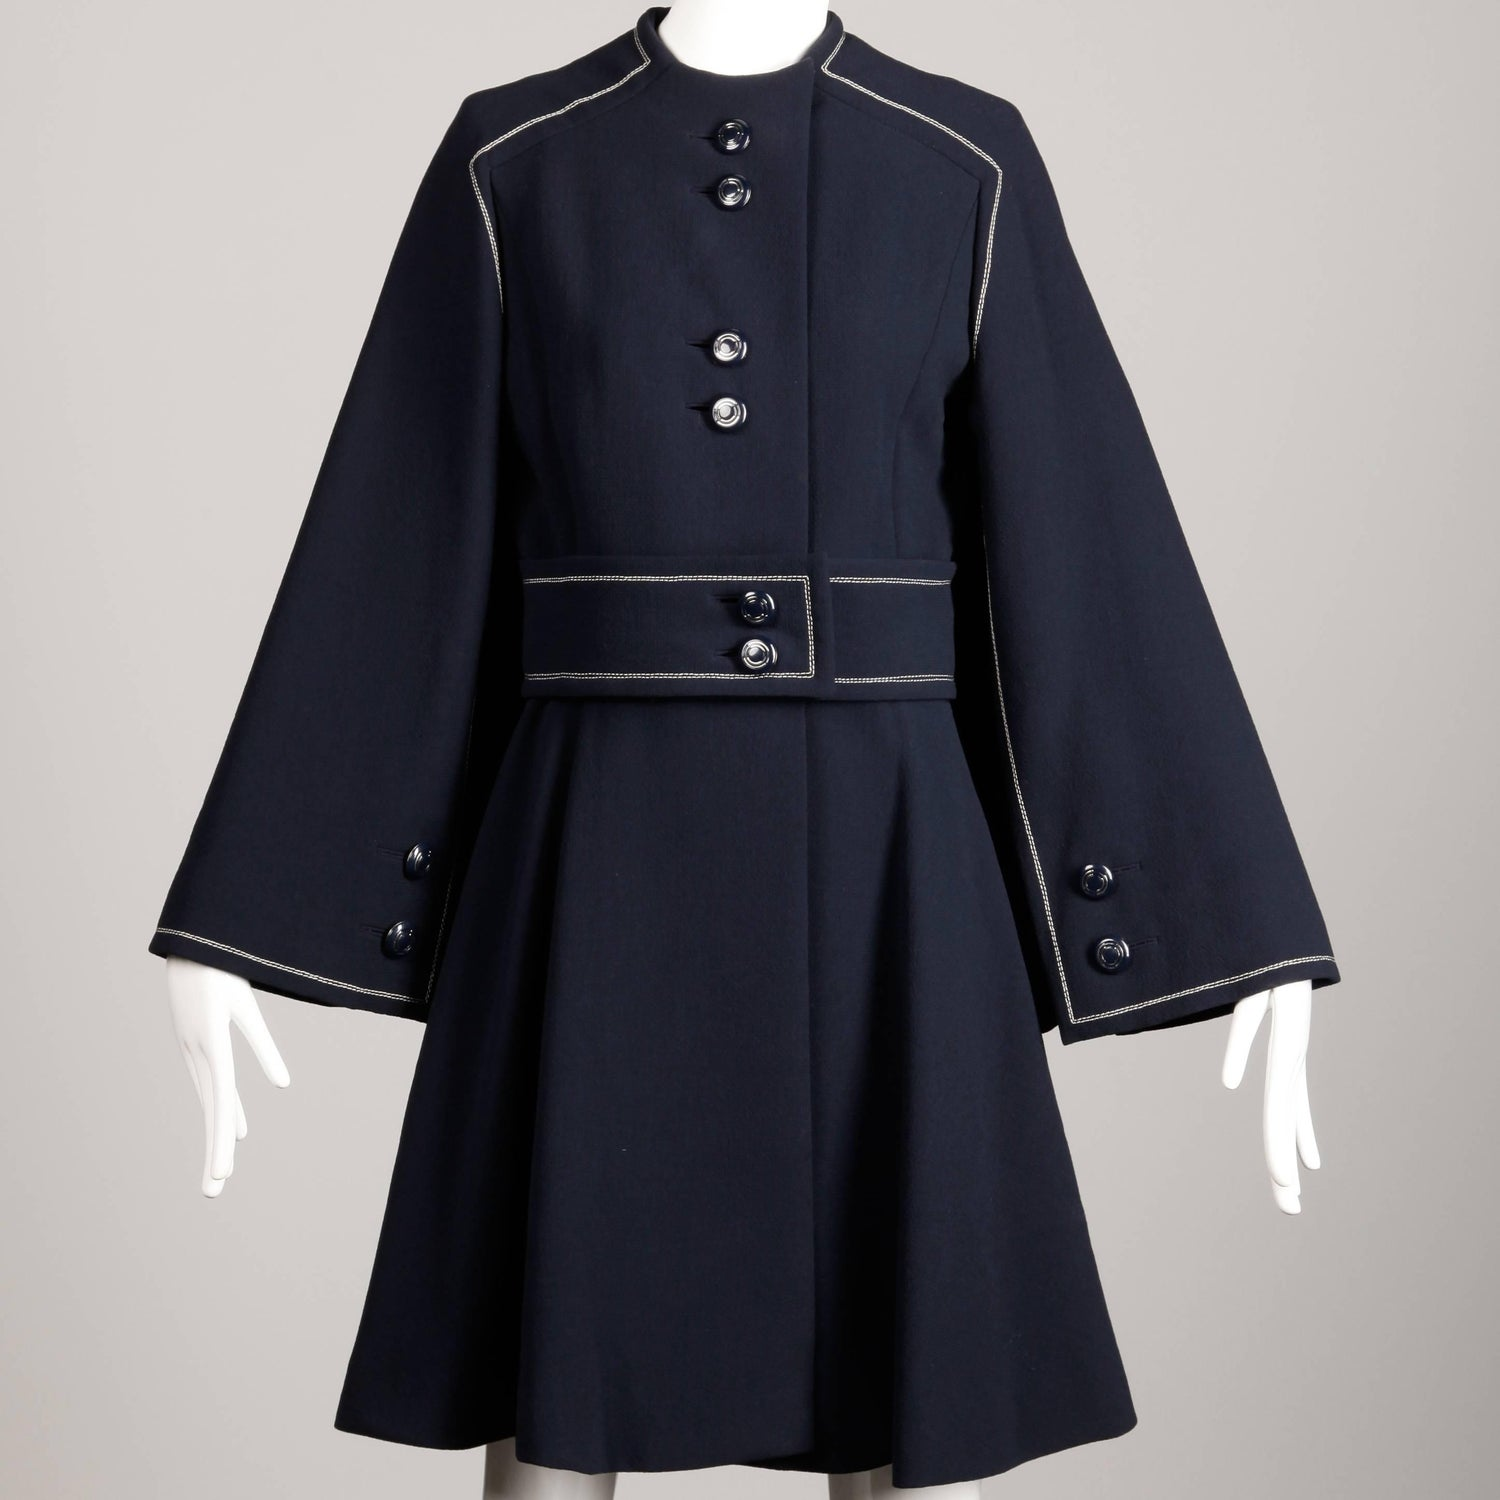 Convertible 1960s Ronald Amey Demi-Couture Vintage Wool + Silk Cape Dress  Coat For Sale at 1stdibs 16eec71b77